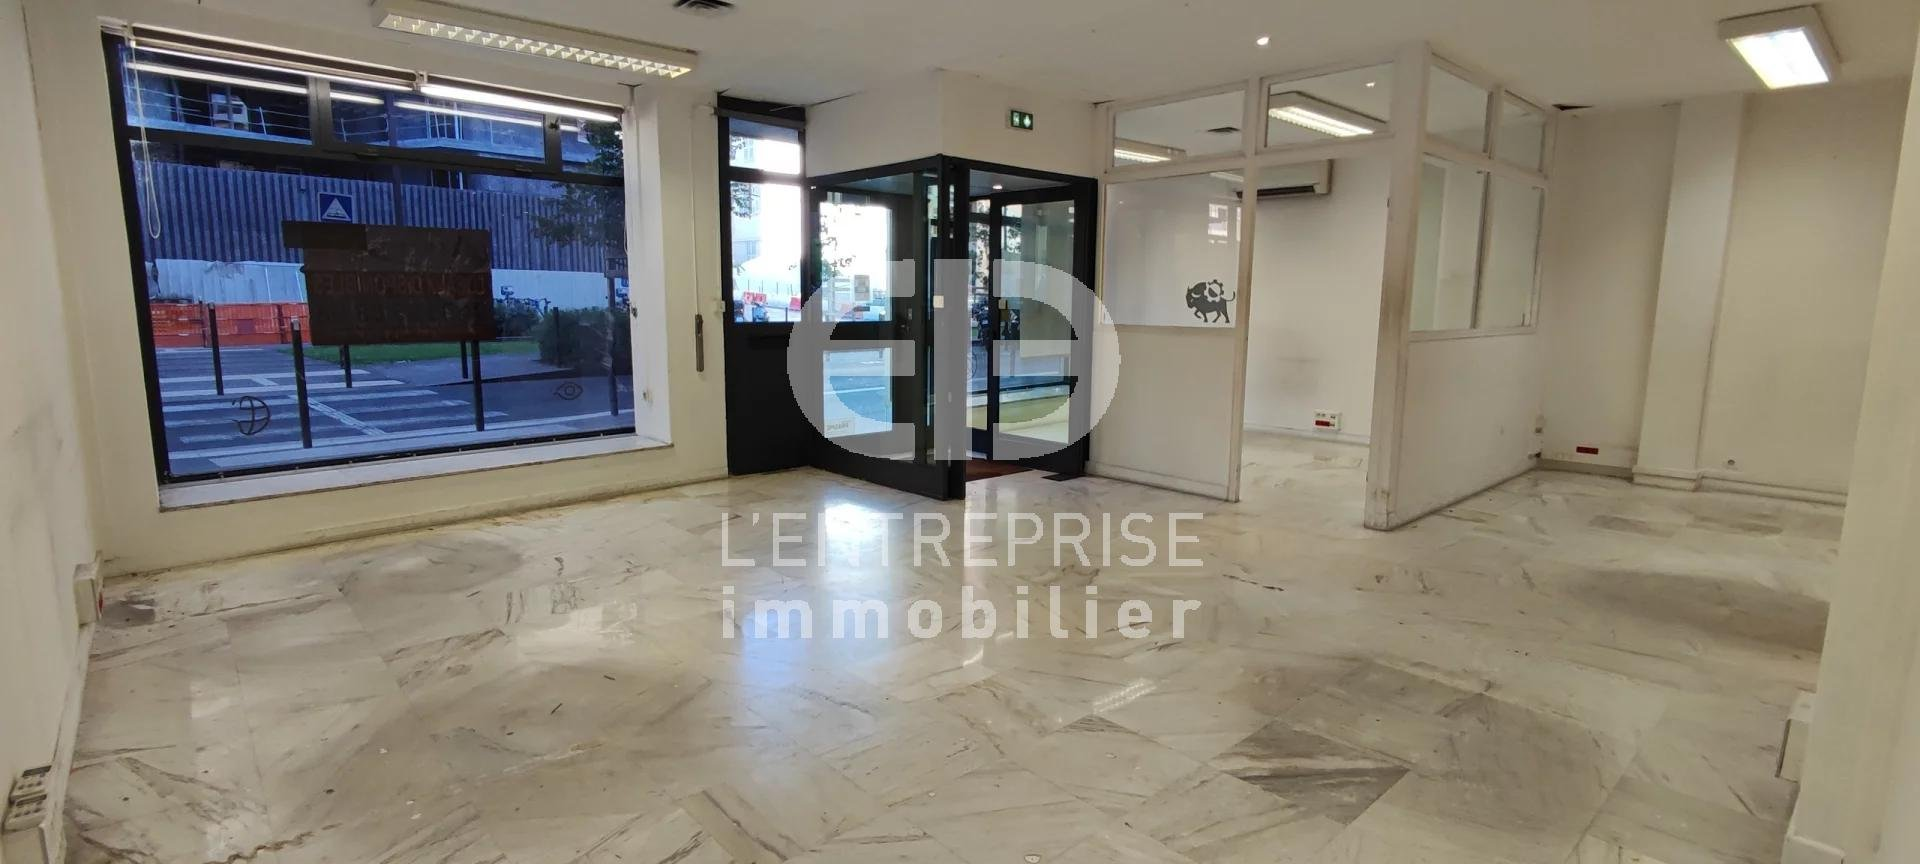 A LOUER LOCAL COMMERCIAL 116 M² NICE CALIFORNIE